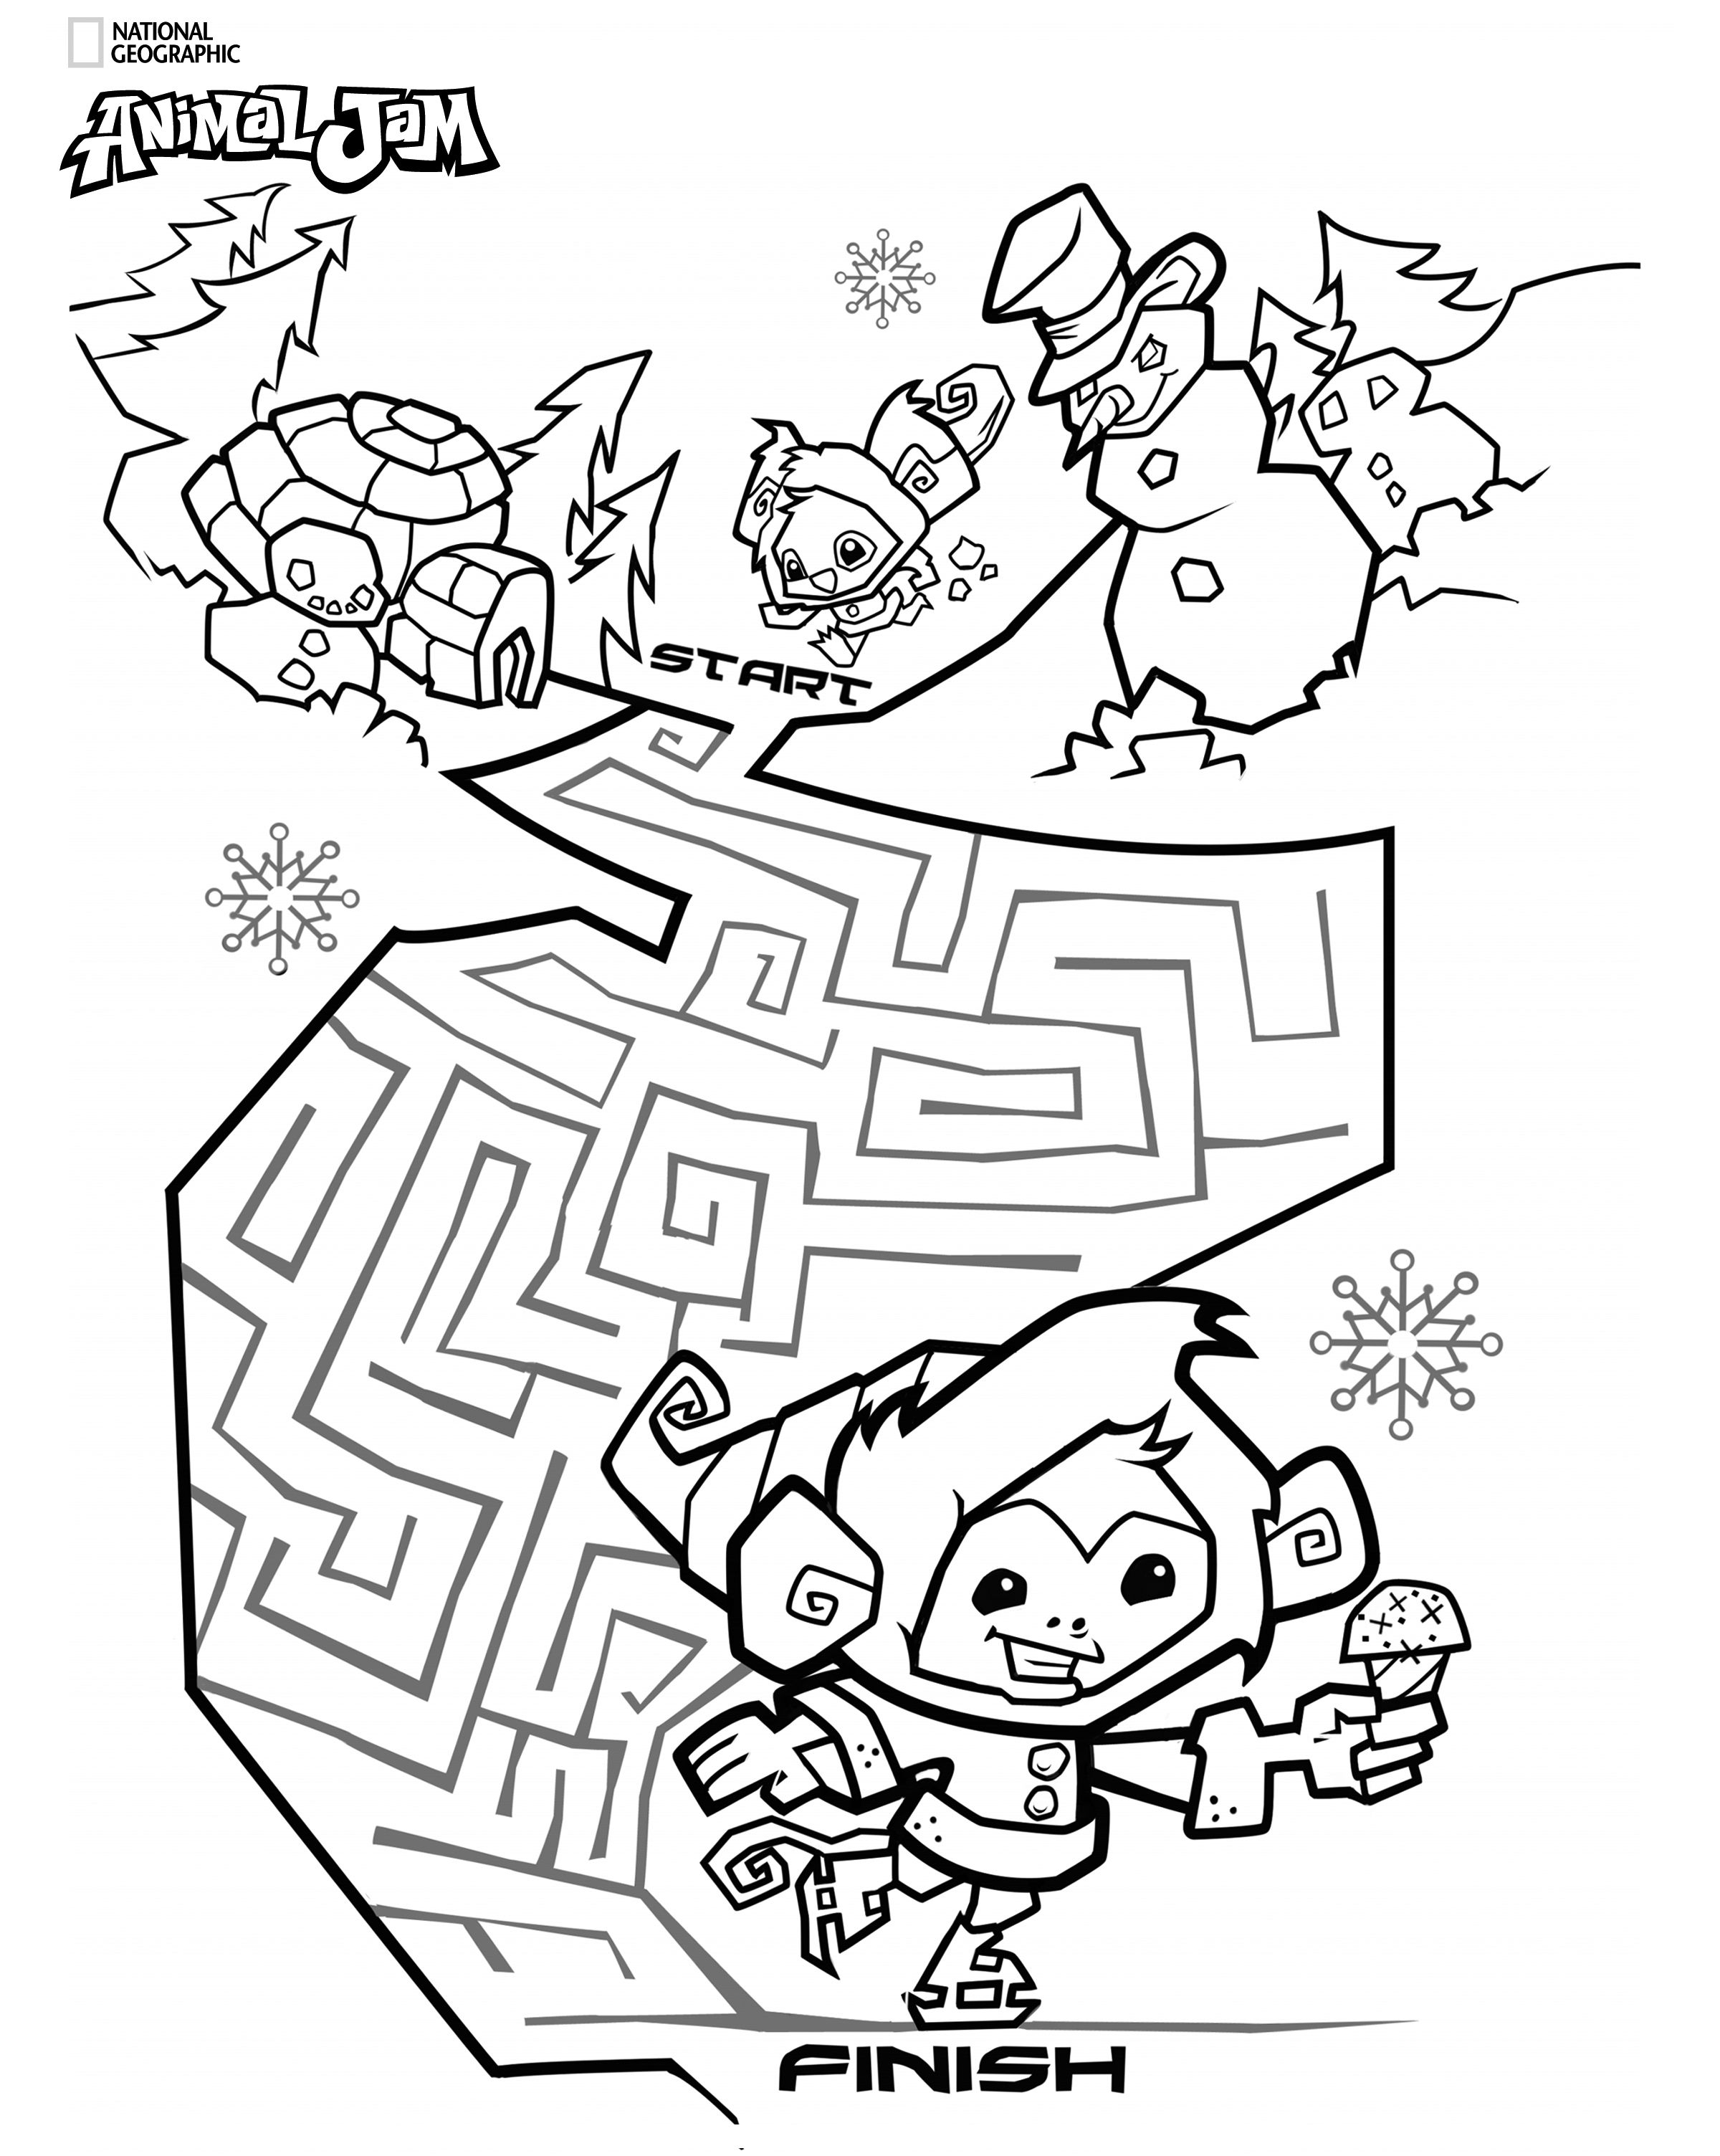 national geographic kids coloring pages national geographic coloring pages coloring home geographic coloring pages national kids